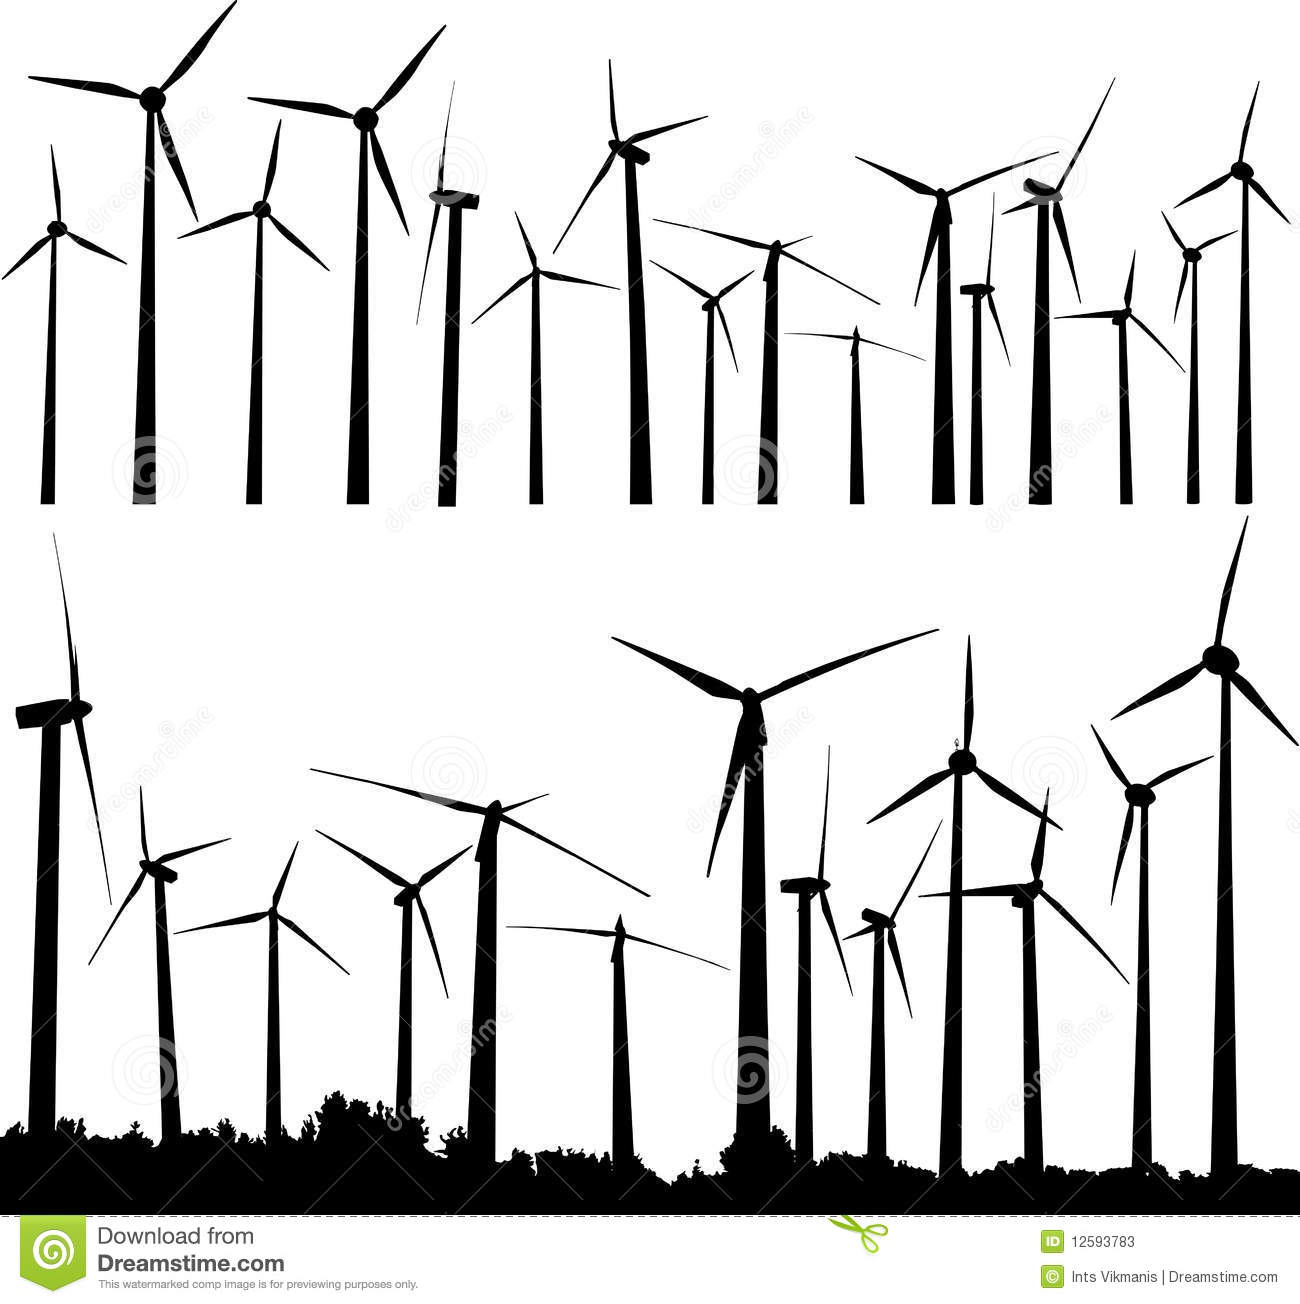 Dc Generator in addition Stepxstepgenerator additionally Storage Can Replace Gas In Our Electricity  works And Boost Renewables 21141 as well Stock Photo Wind Generators Image2058280 as well Introduction Ac Motors. on electric generators turbine